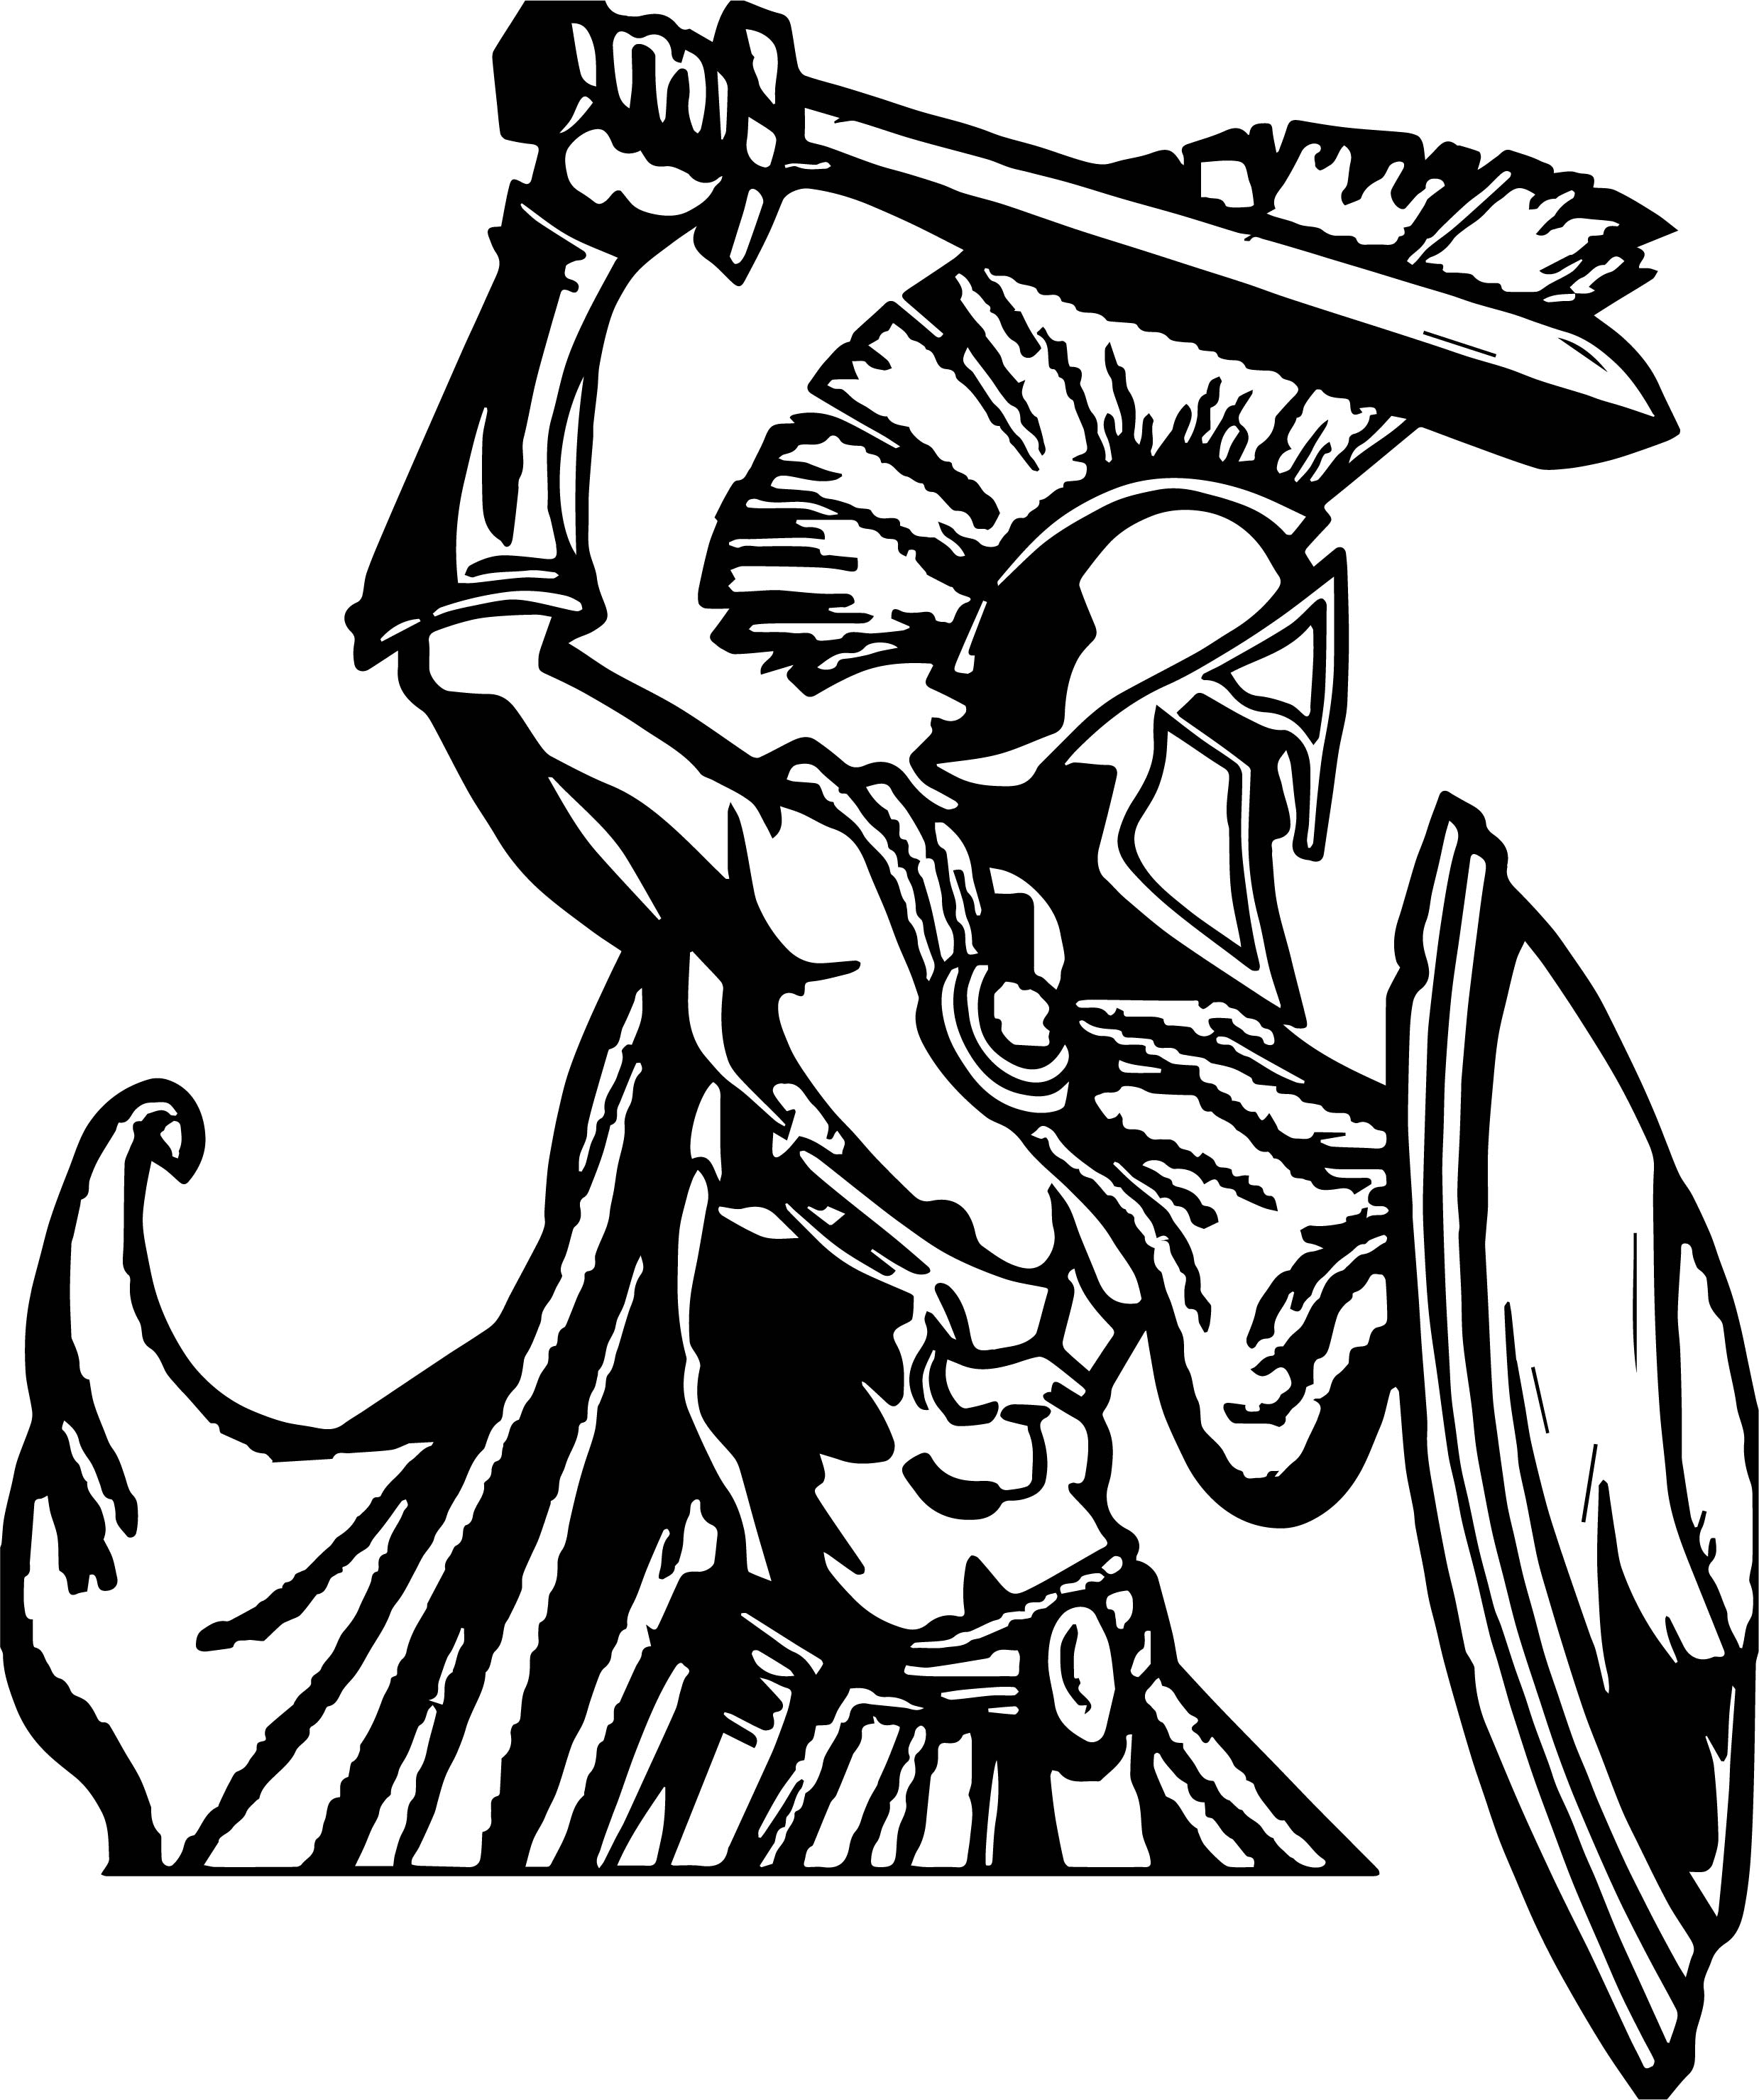 2478x2958 Trojan War Coloring Page Army Gun Coloring Pages